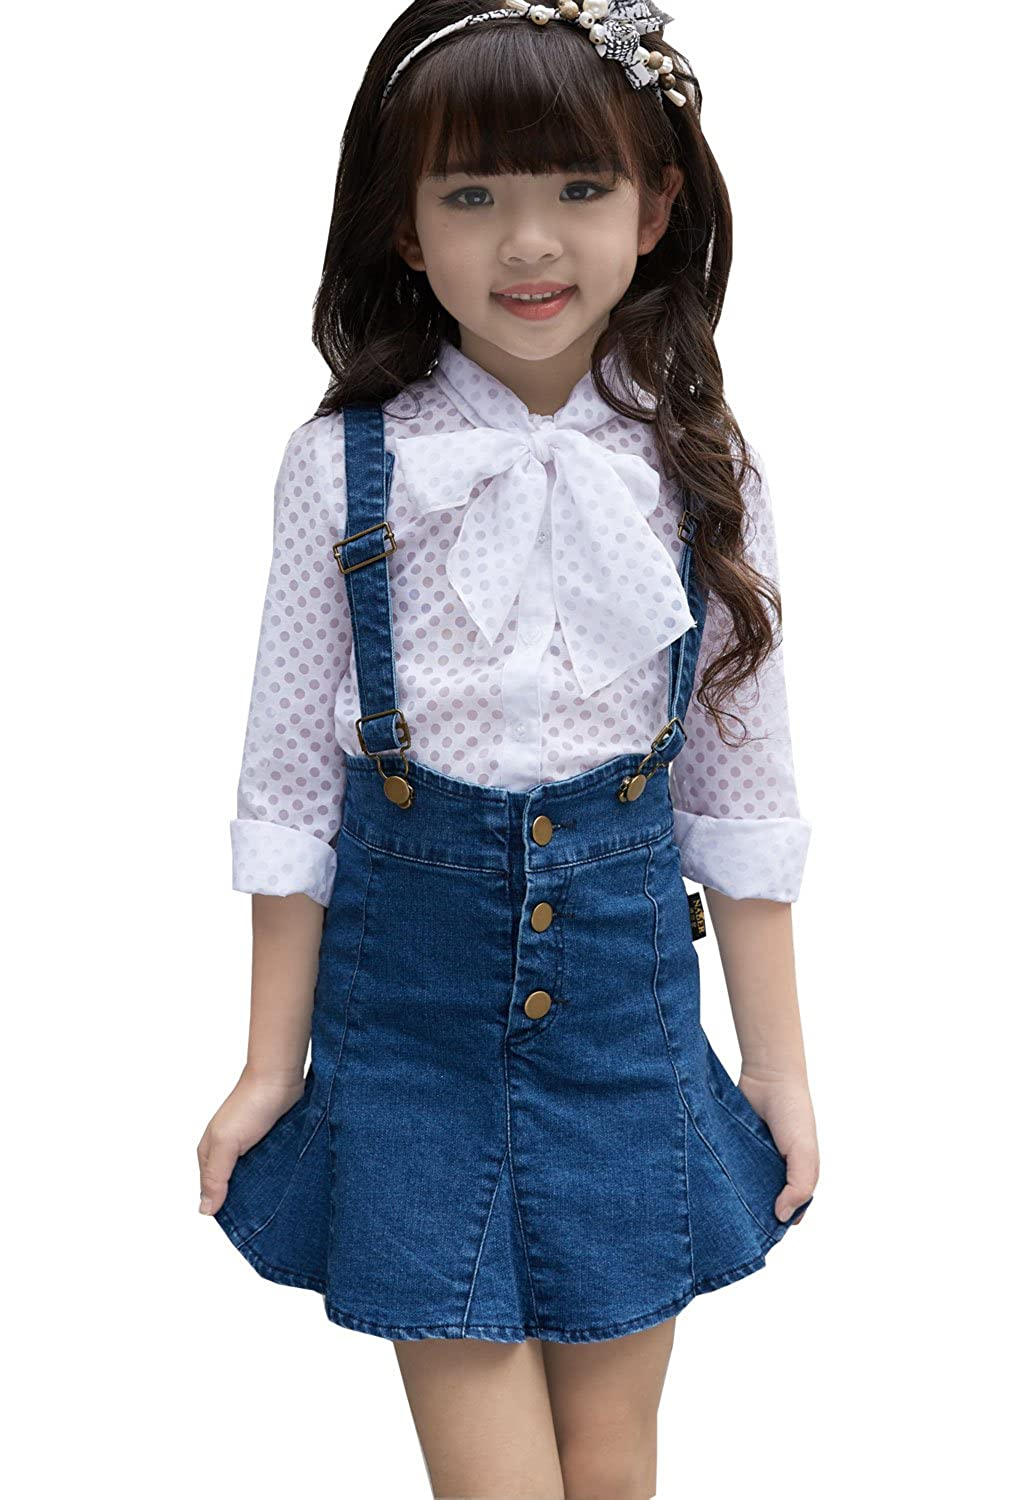 NABER Girls' Fashion Suspender Jeans Skirts Overall Pleated Denim Skirts 4-12 Y